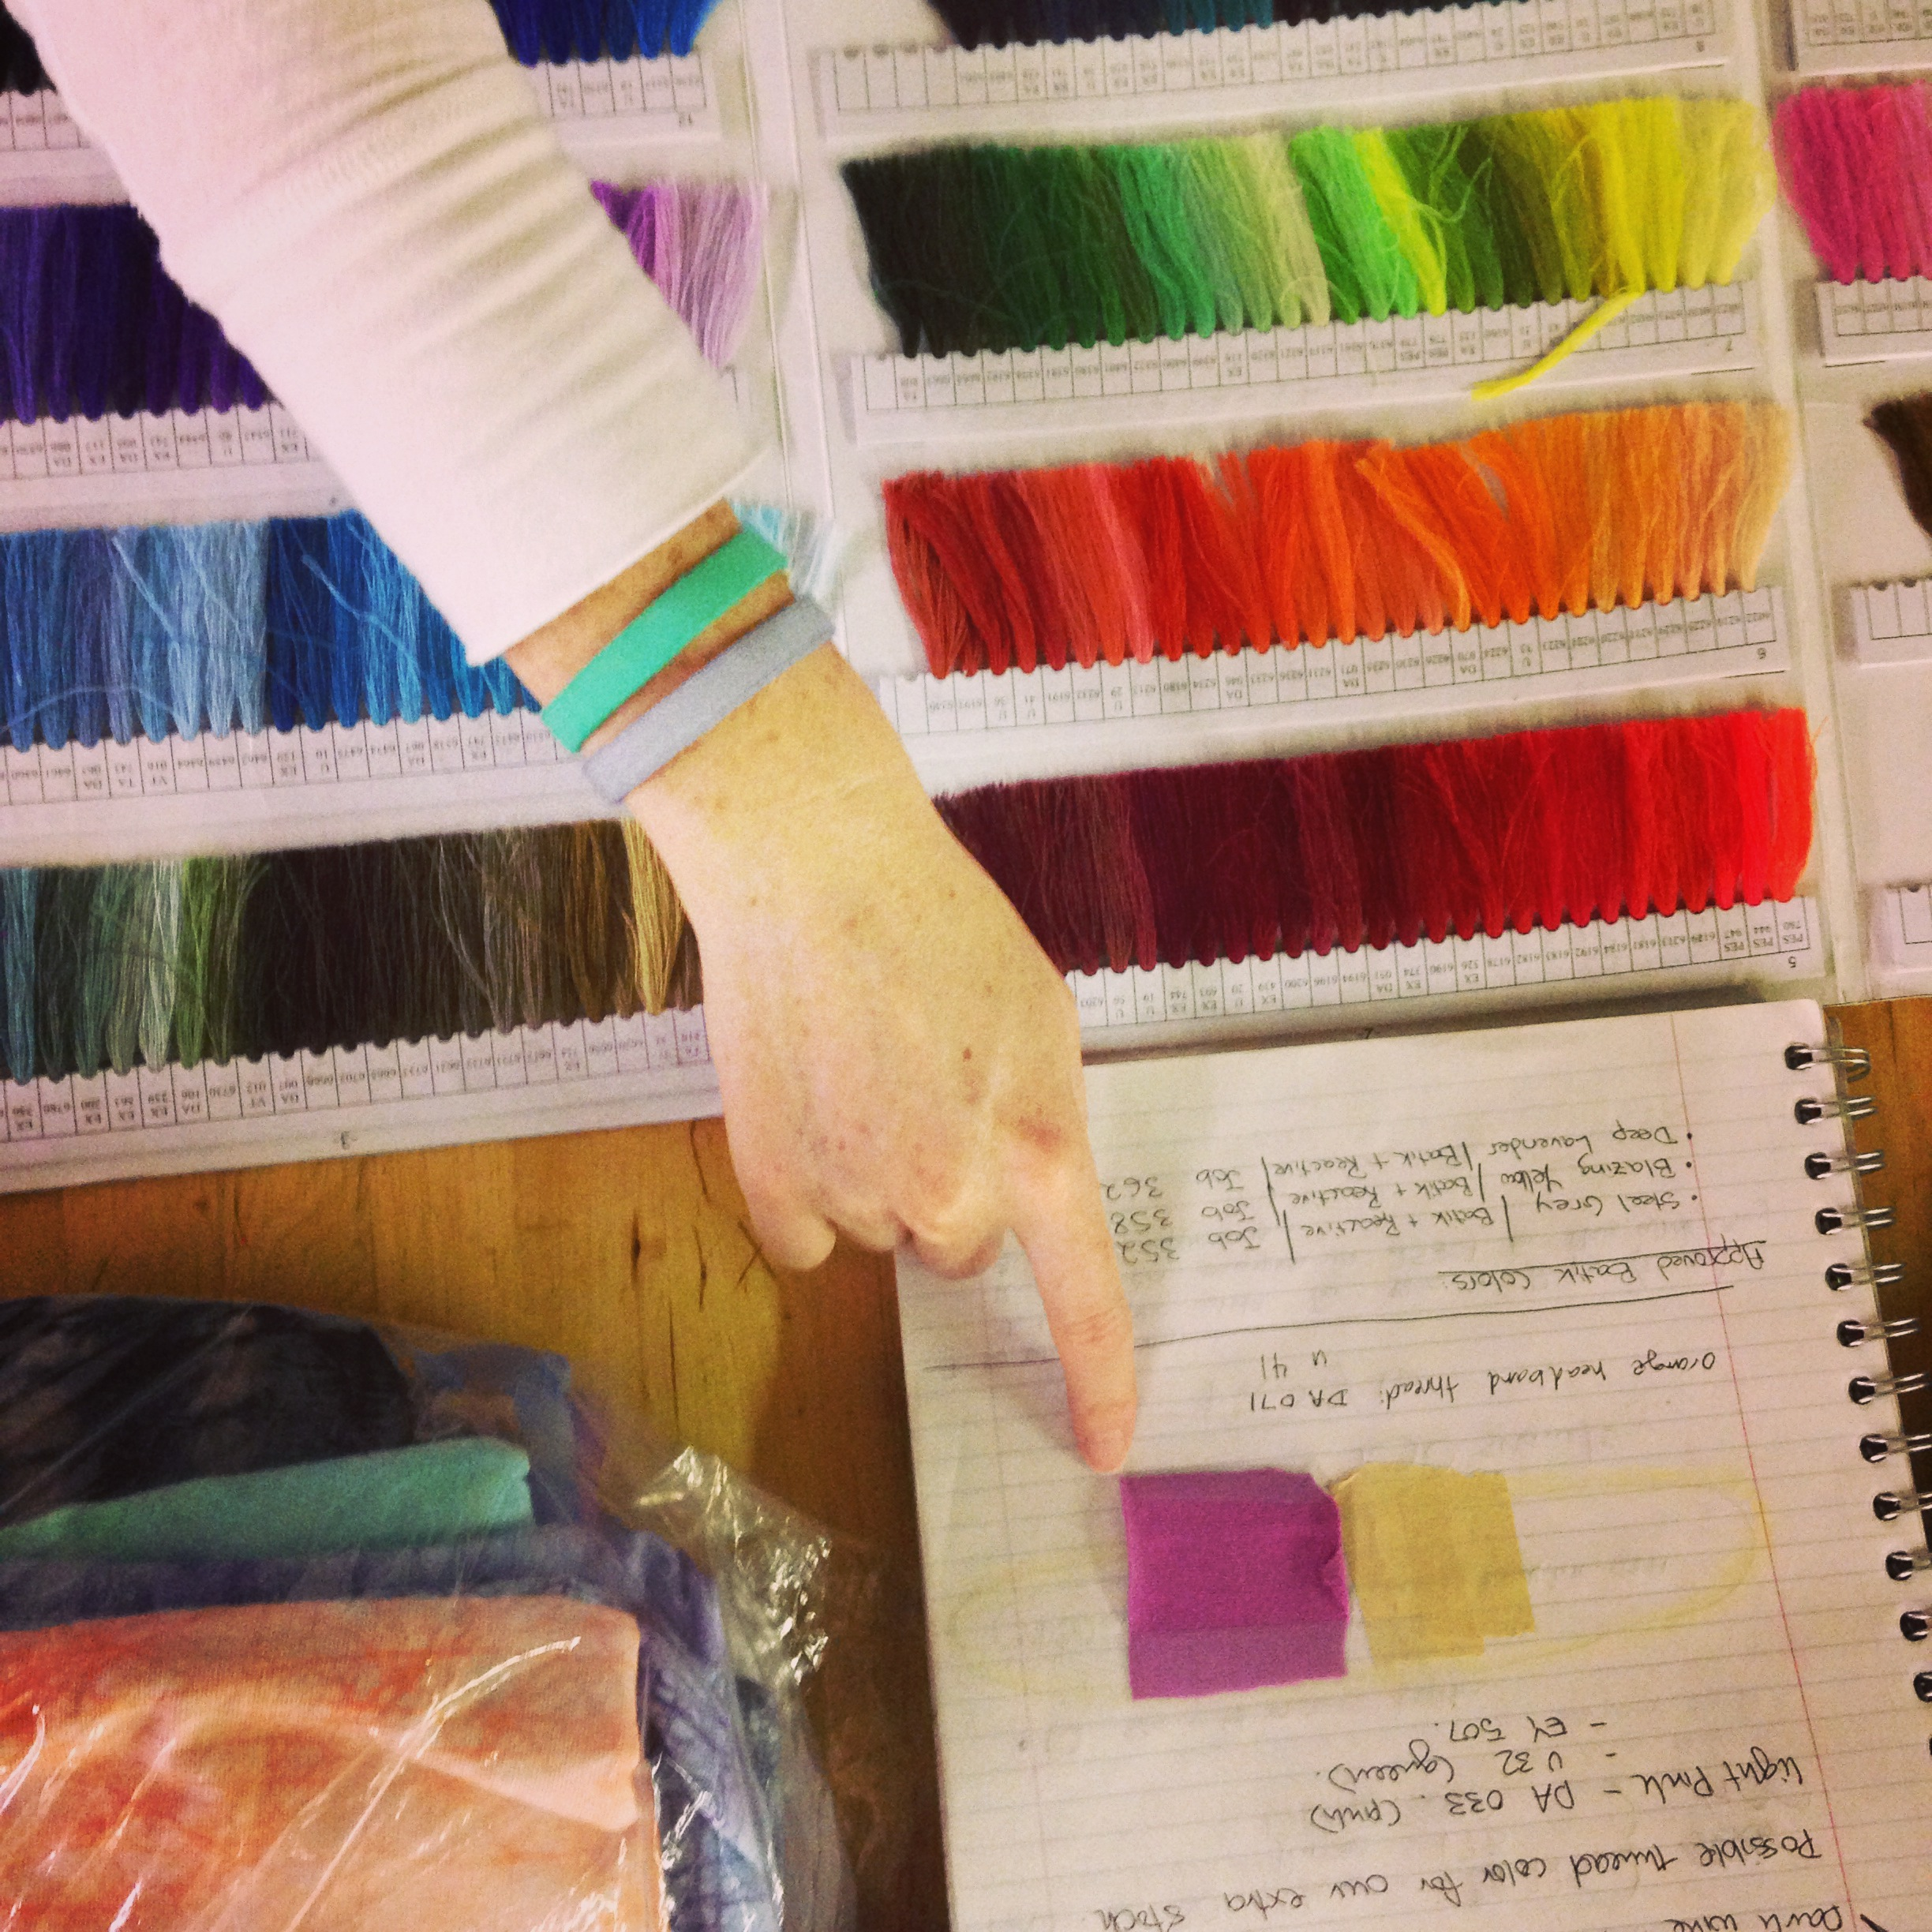 Once a color has been approved we turn our attention to finding the perfect thread color to match